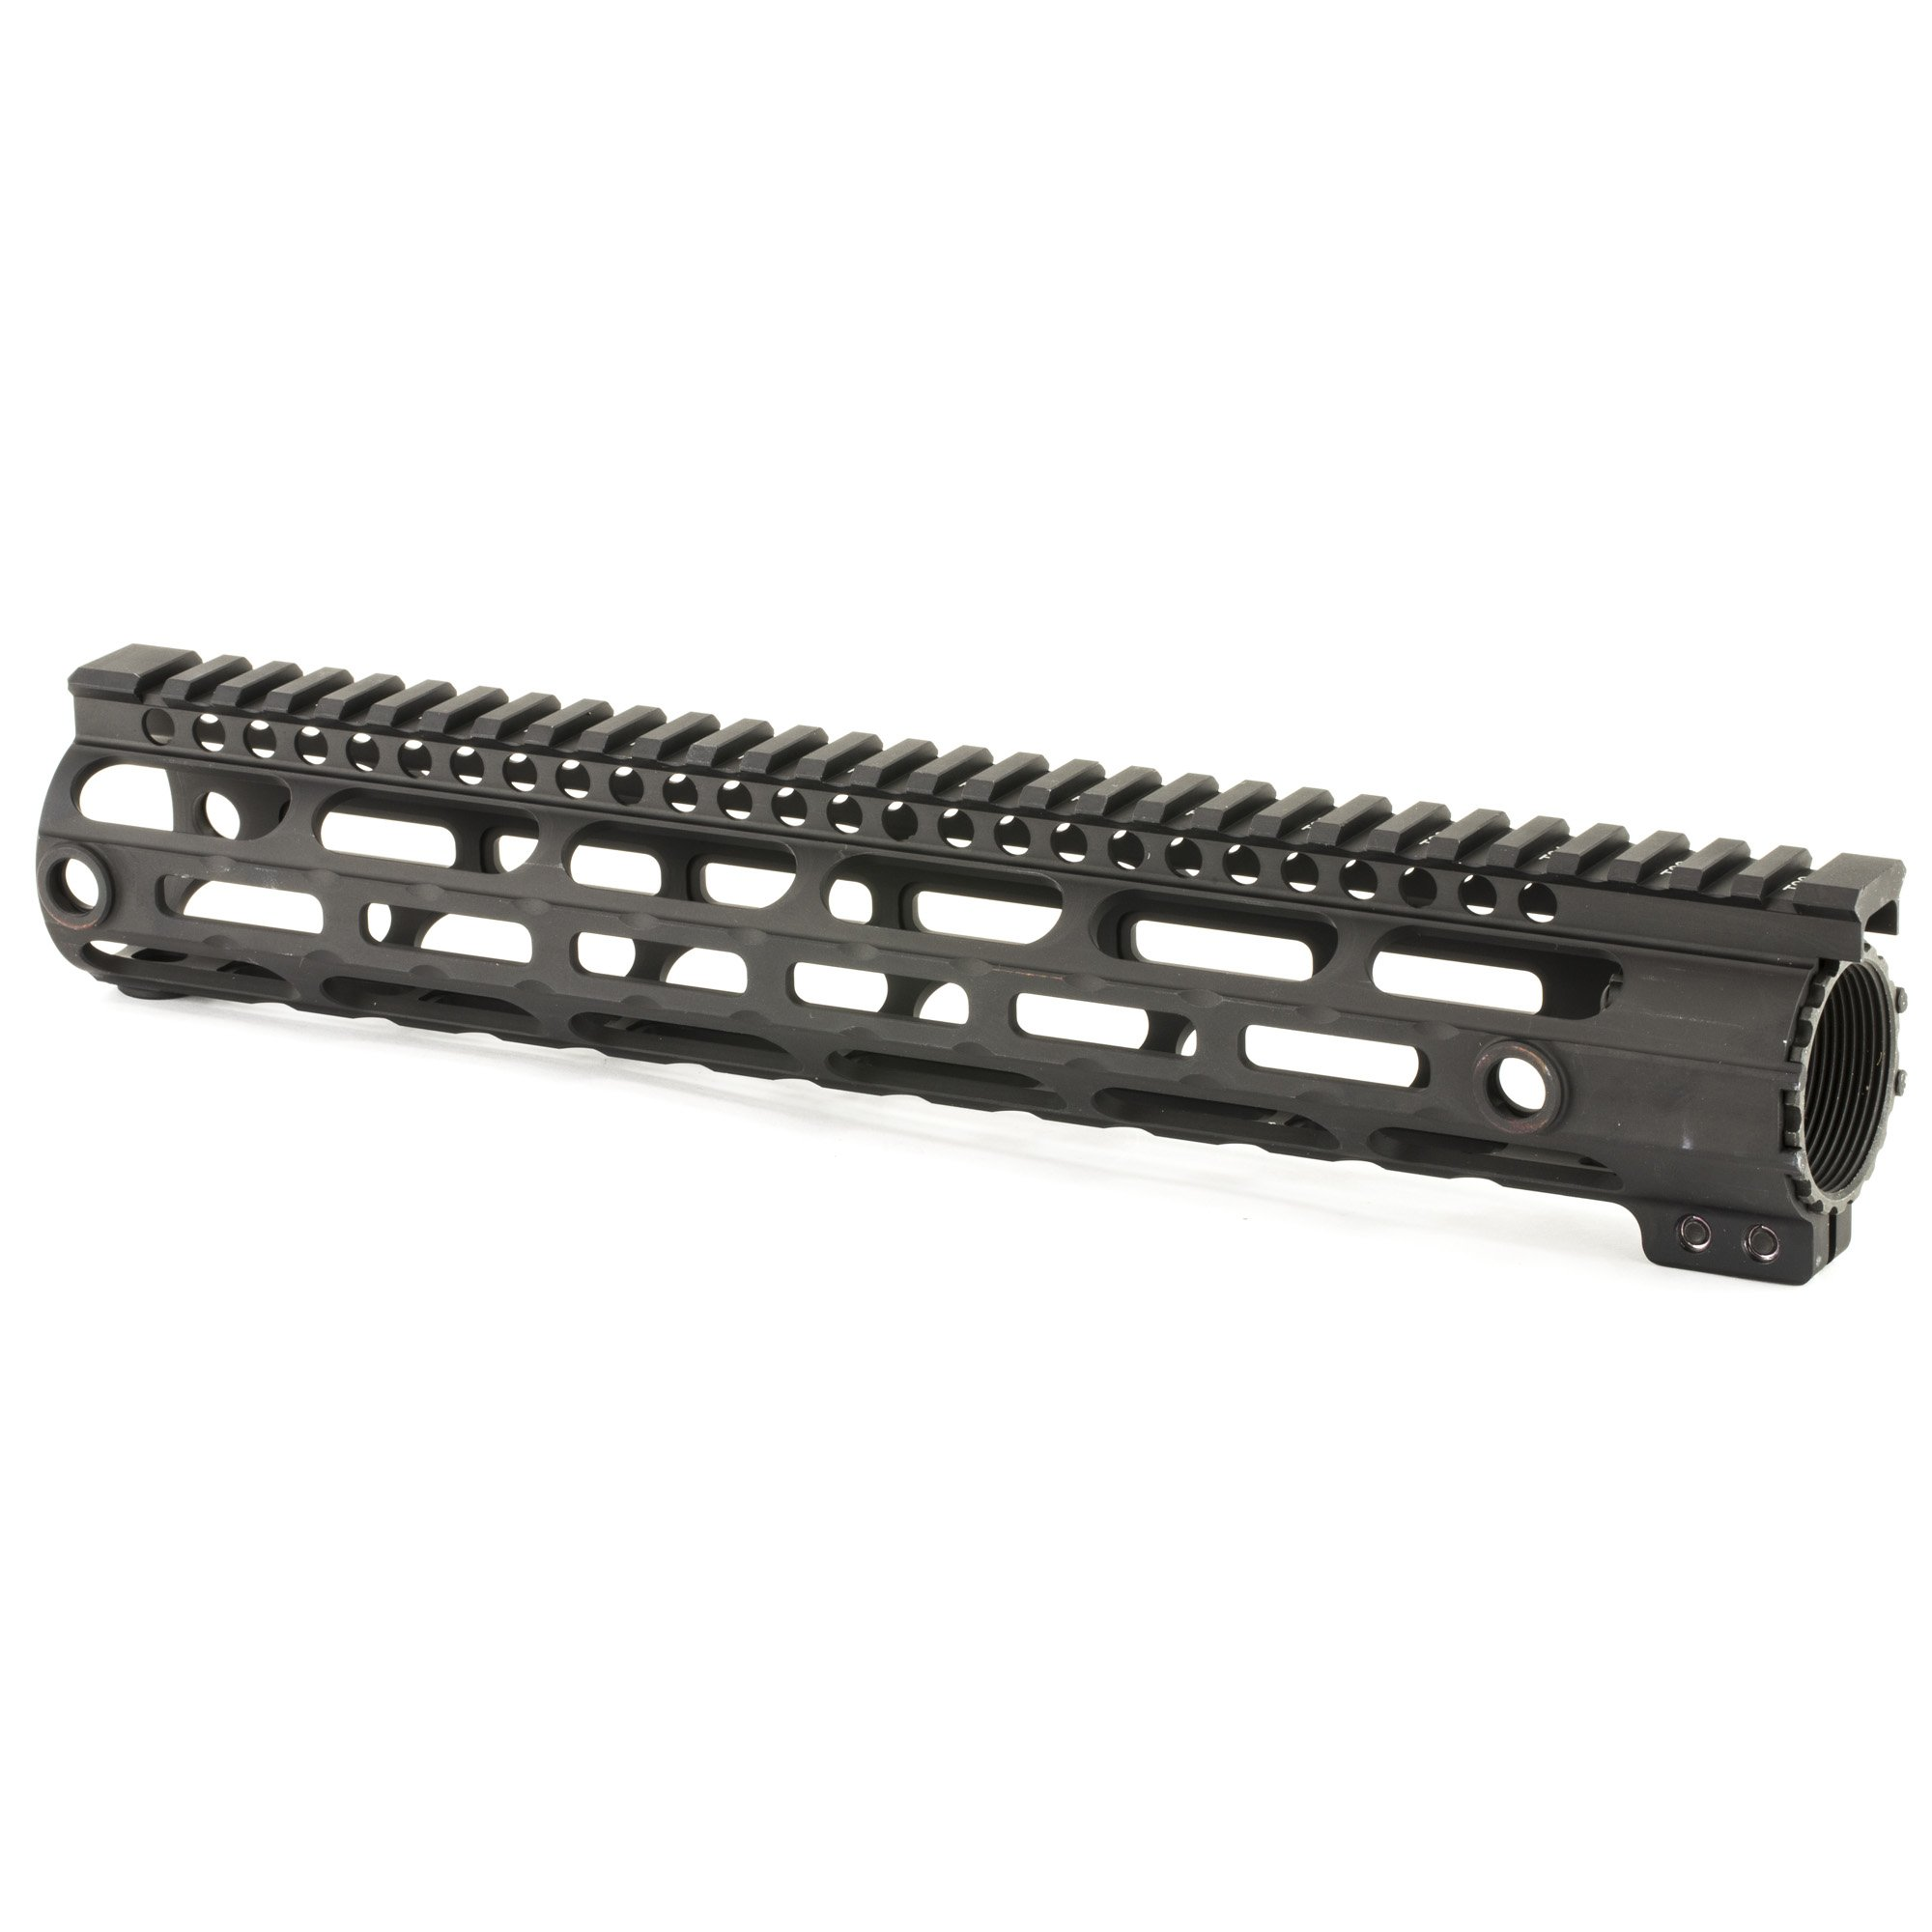 Midwest Industries 308 SS Series One Piece Free Float DPMS M-LOK Handguard, .210 Upper Tang Review